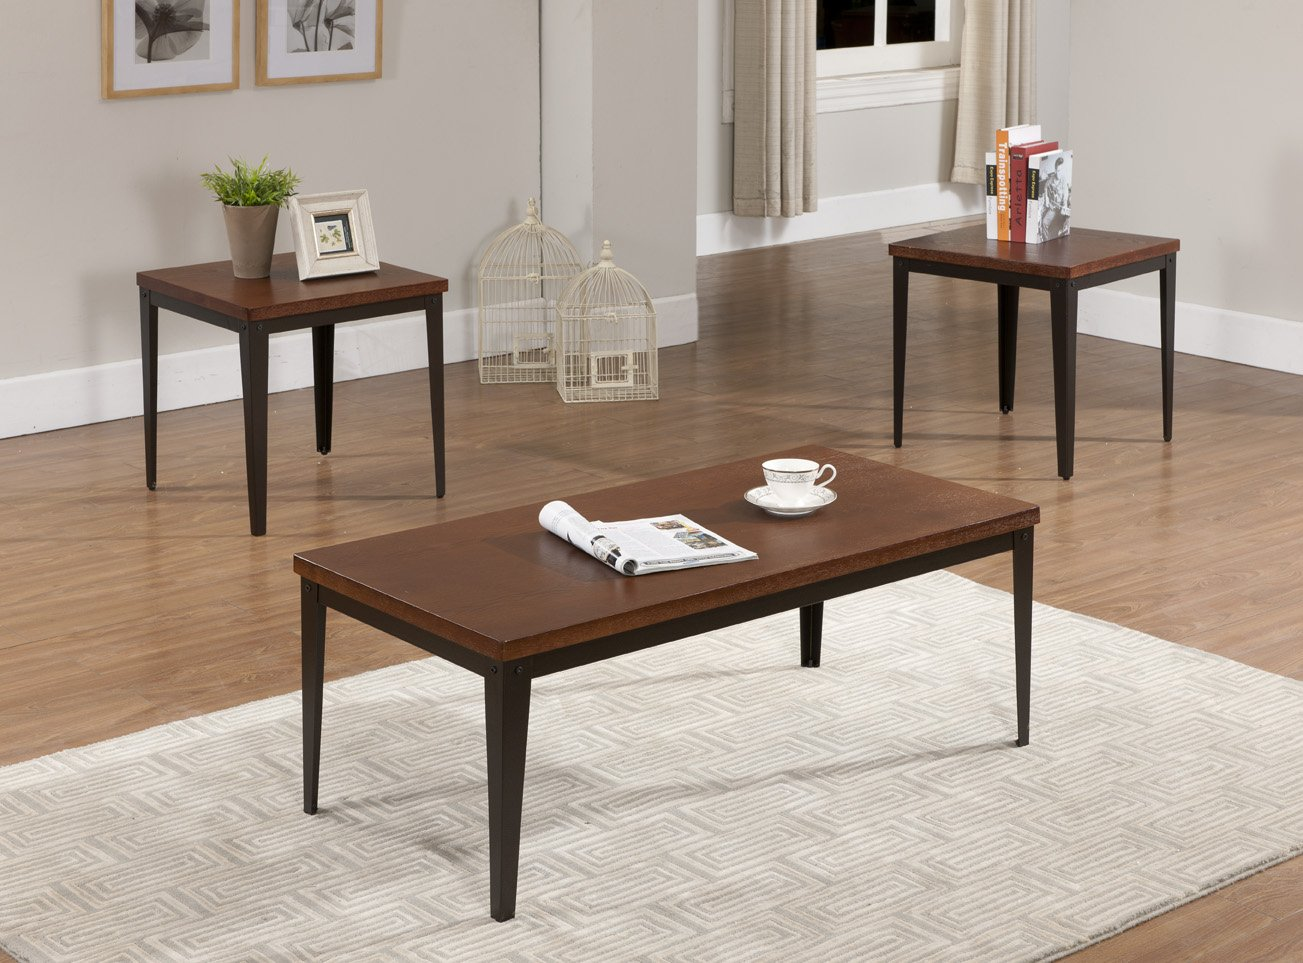 3 Pc Metal Frame With Cherry Finish Wood Top Coffee Table 2 End Tables New Ebay